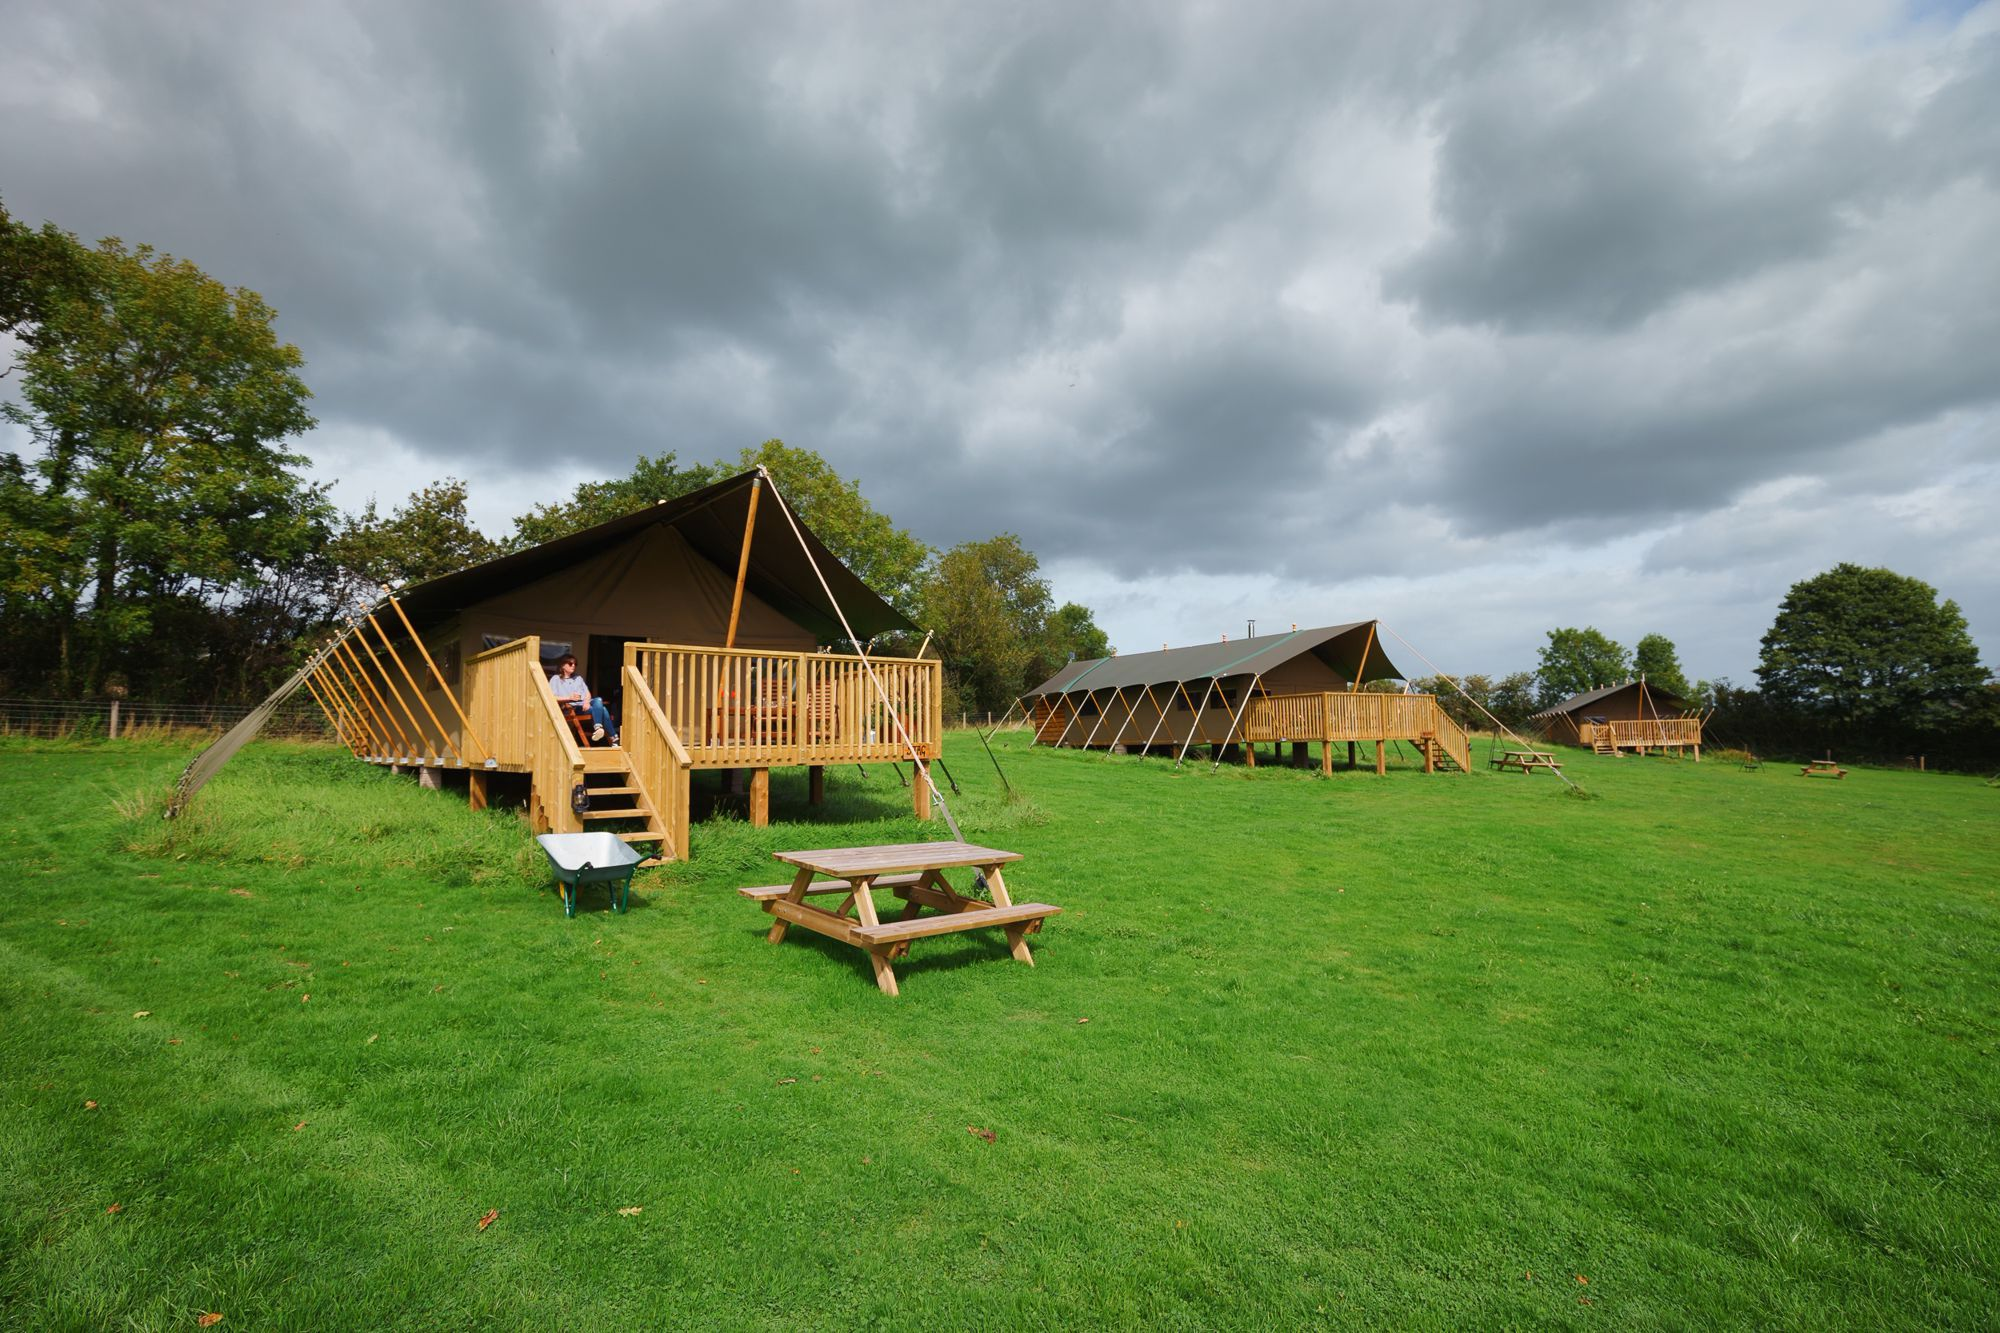 Glamping in the Blackdown Hills – Top glampsites in the Blackdown Hills AONB